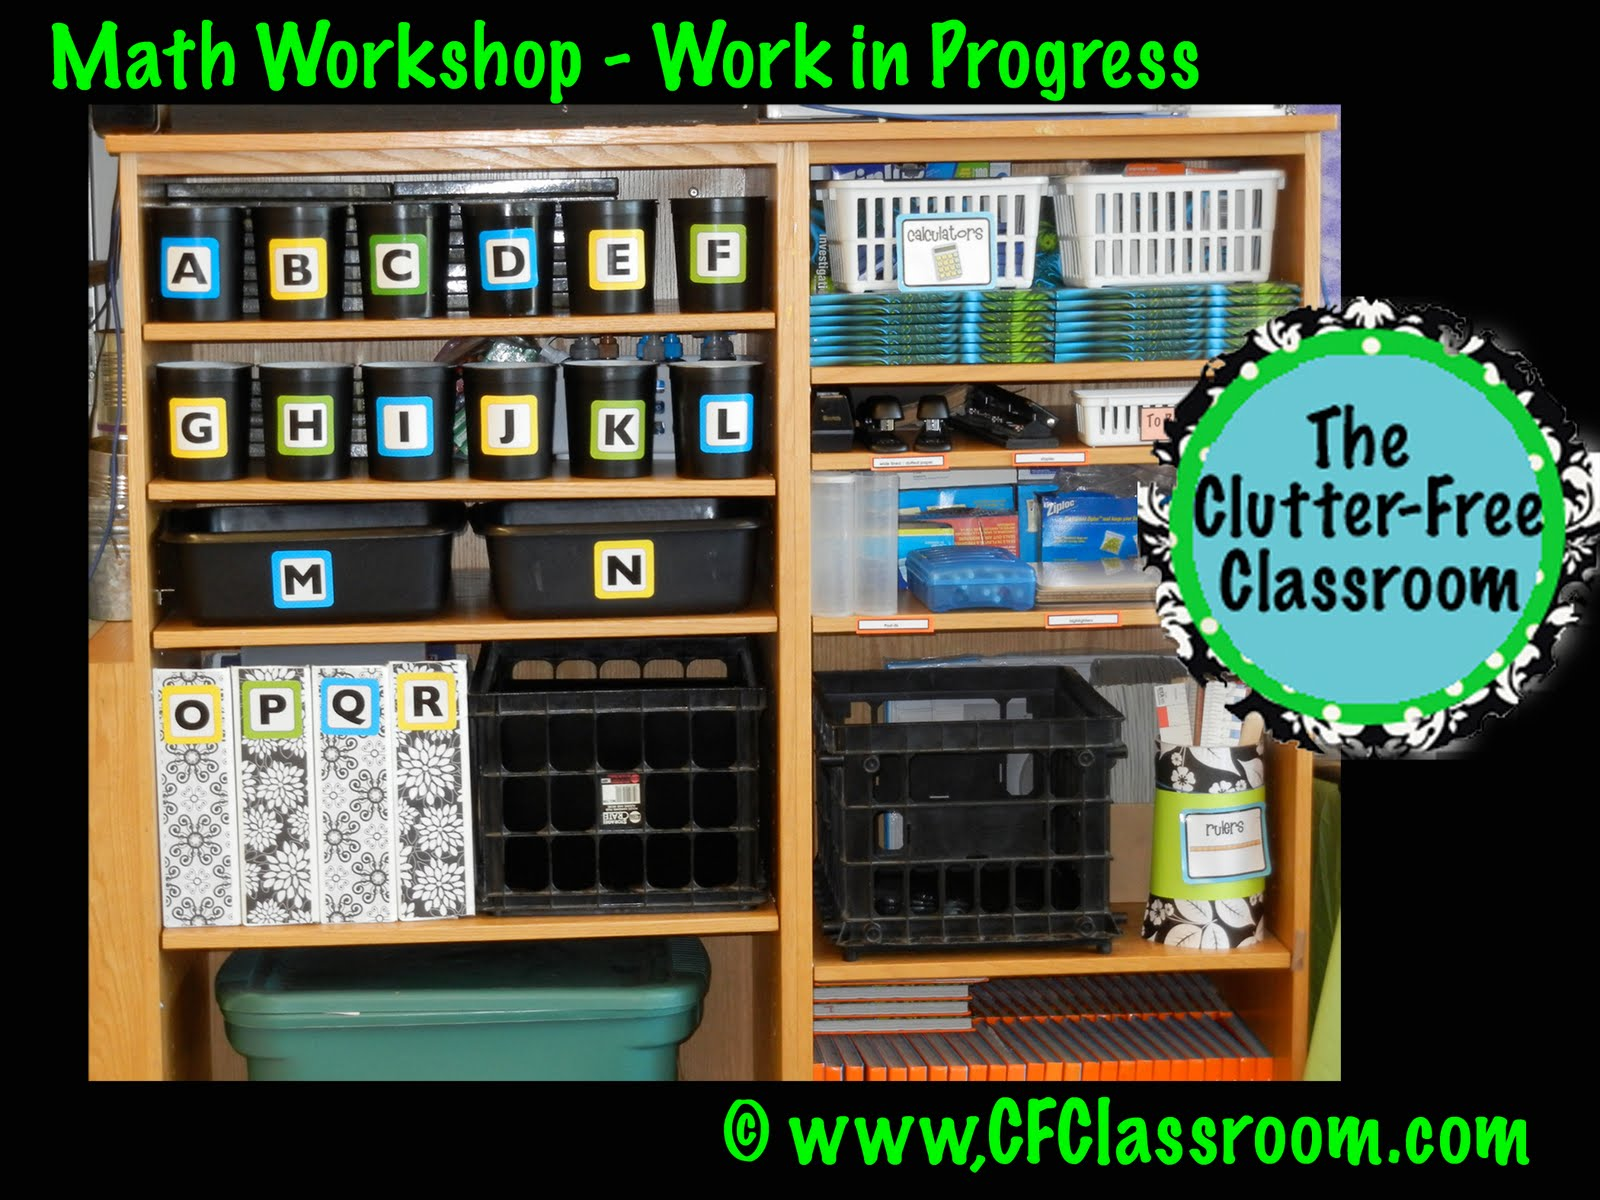 More About Math Workshop